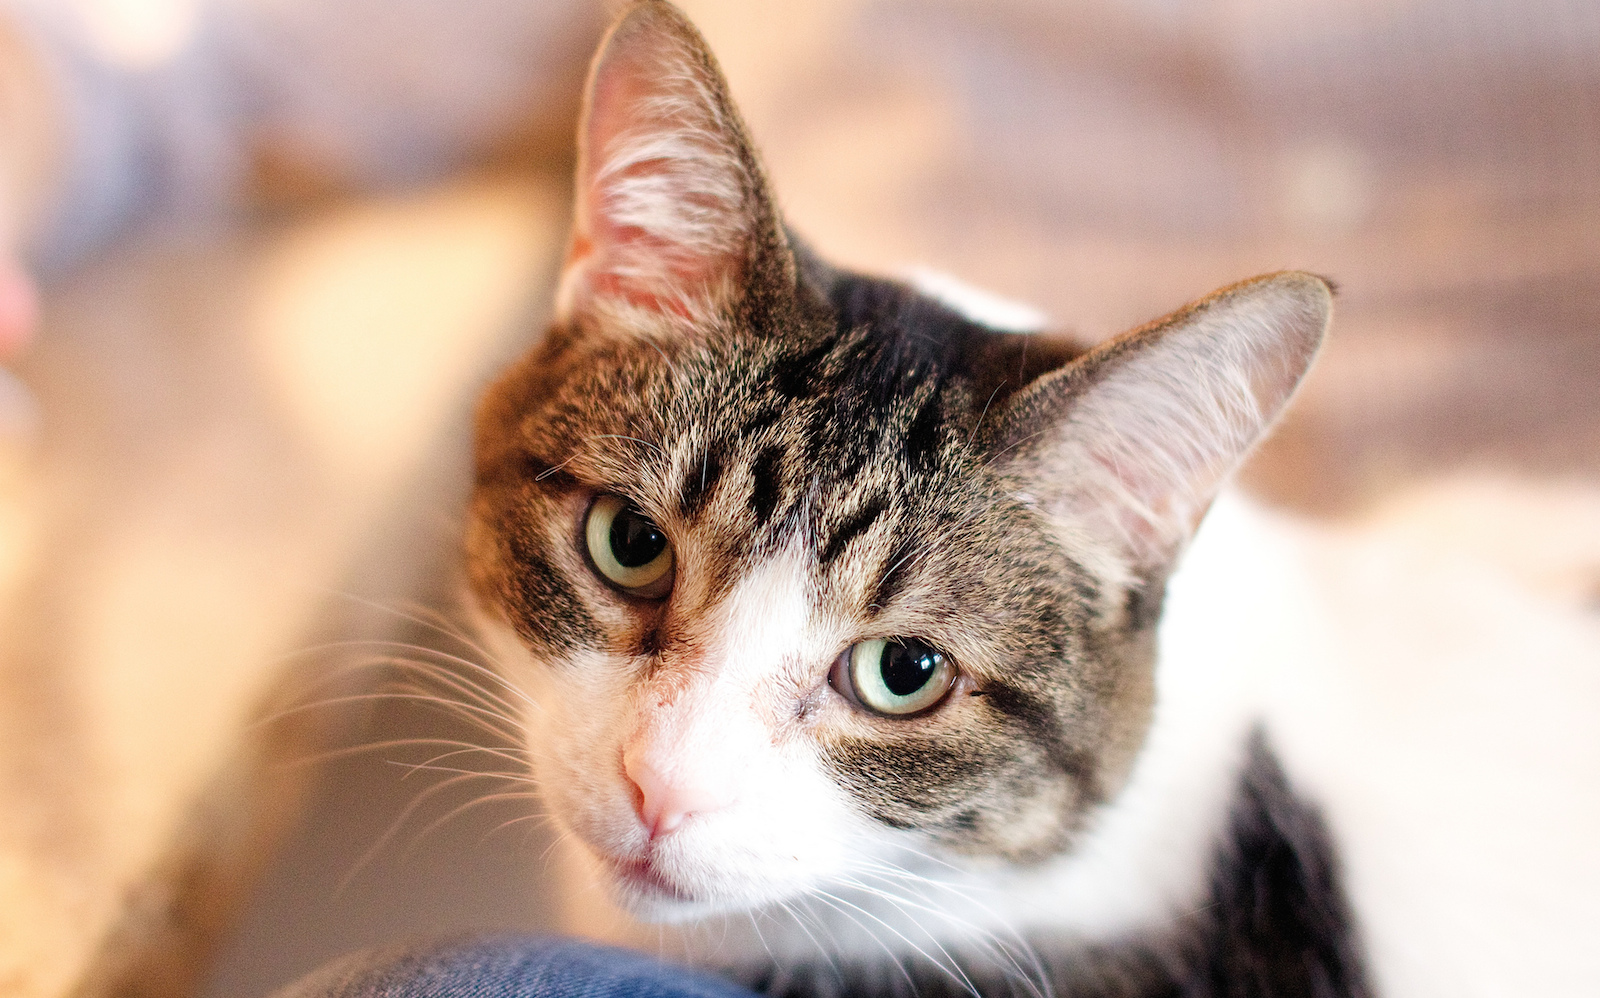 5 Common Cat Behavioral Issues and How to Address Them